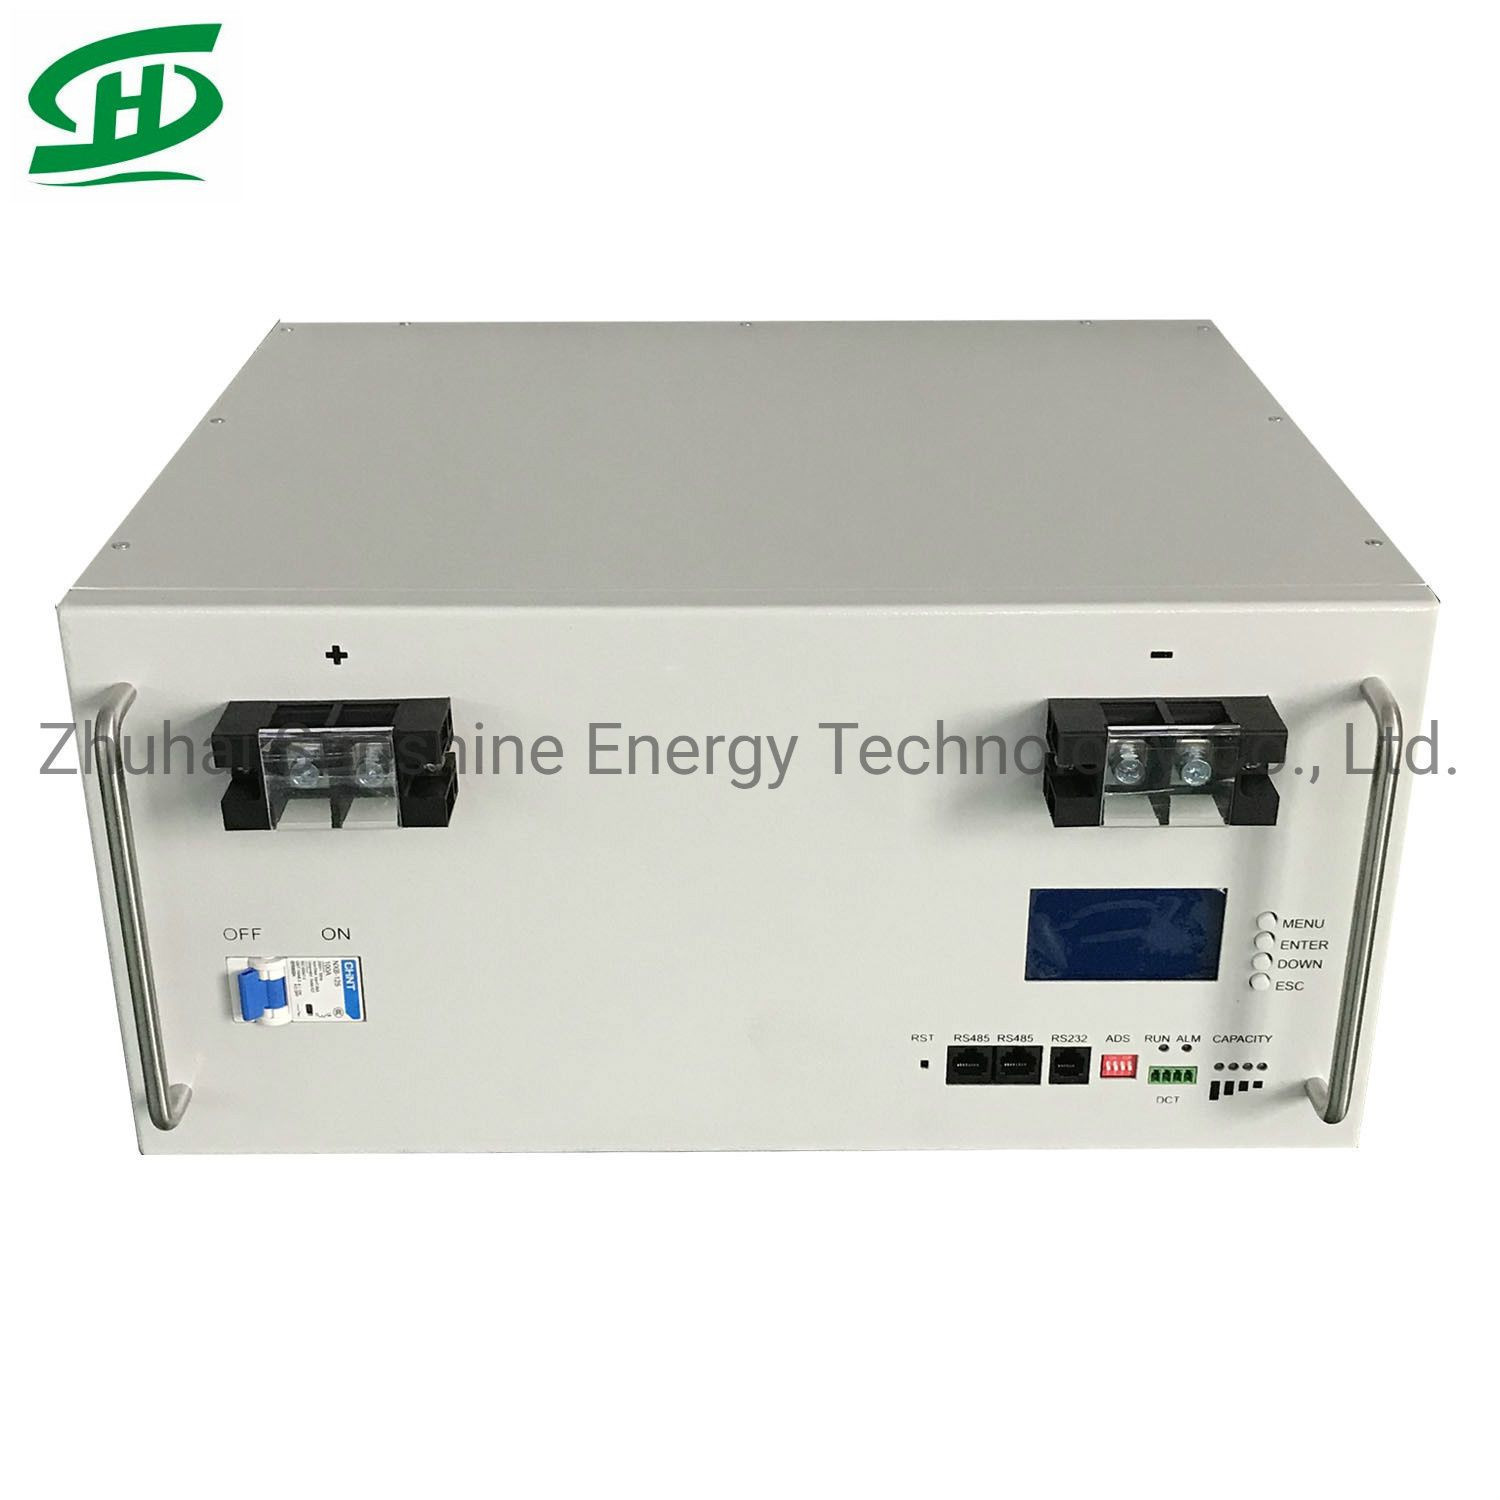 48V 100ah LiFePO4 Lithium Ion Battery for Home PV Solar Energy Storage System Telecom Tower UPS